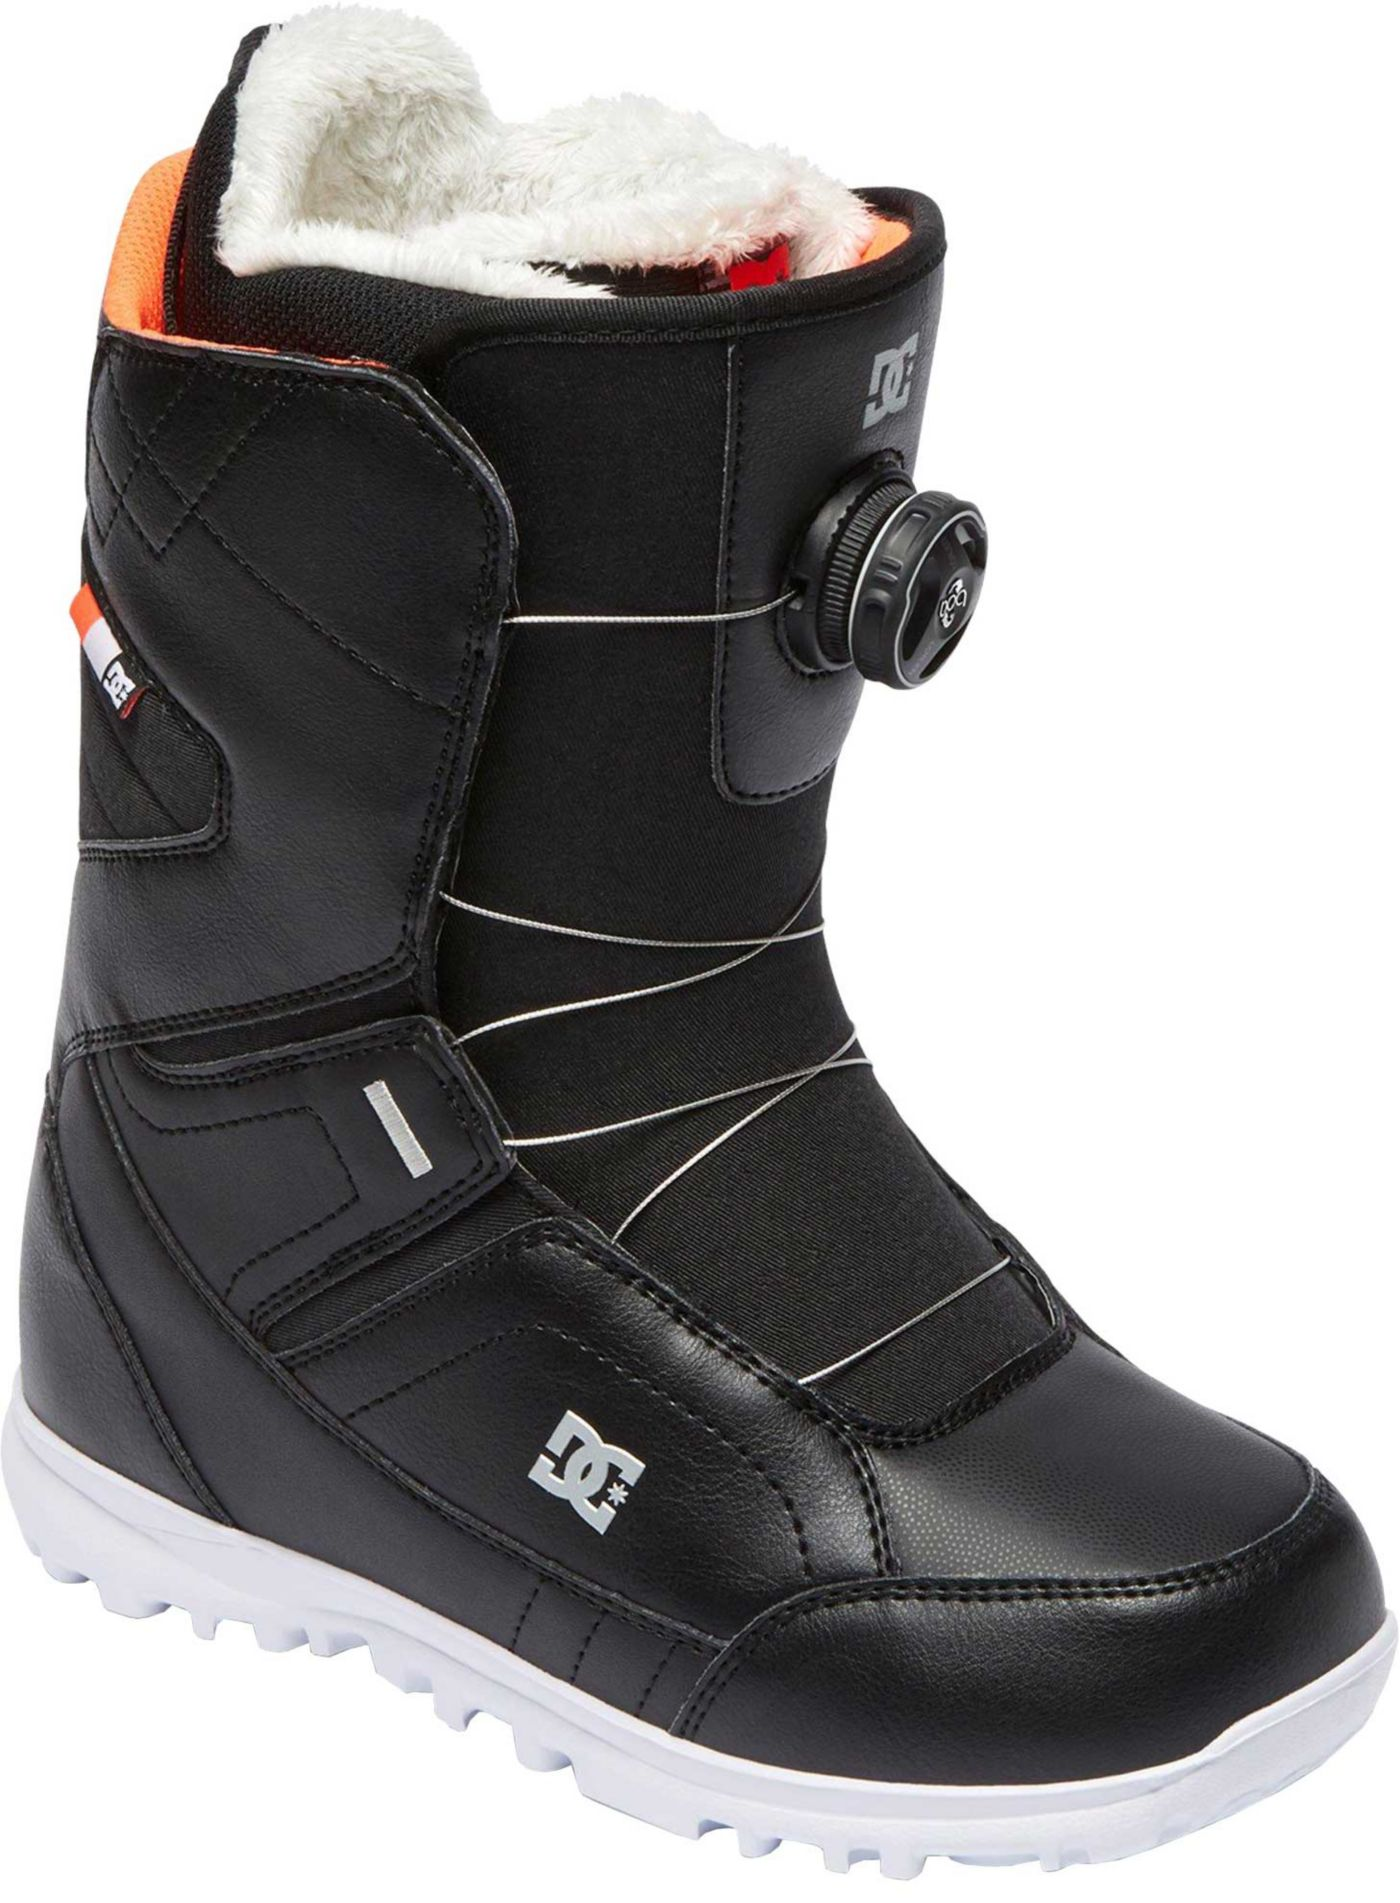 DC Shoes Women's Search BOA 2018-2019 Snowboard Boots